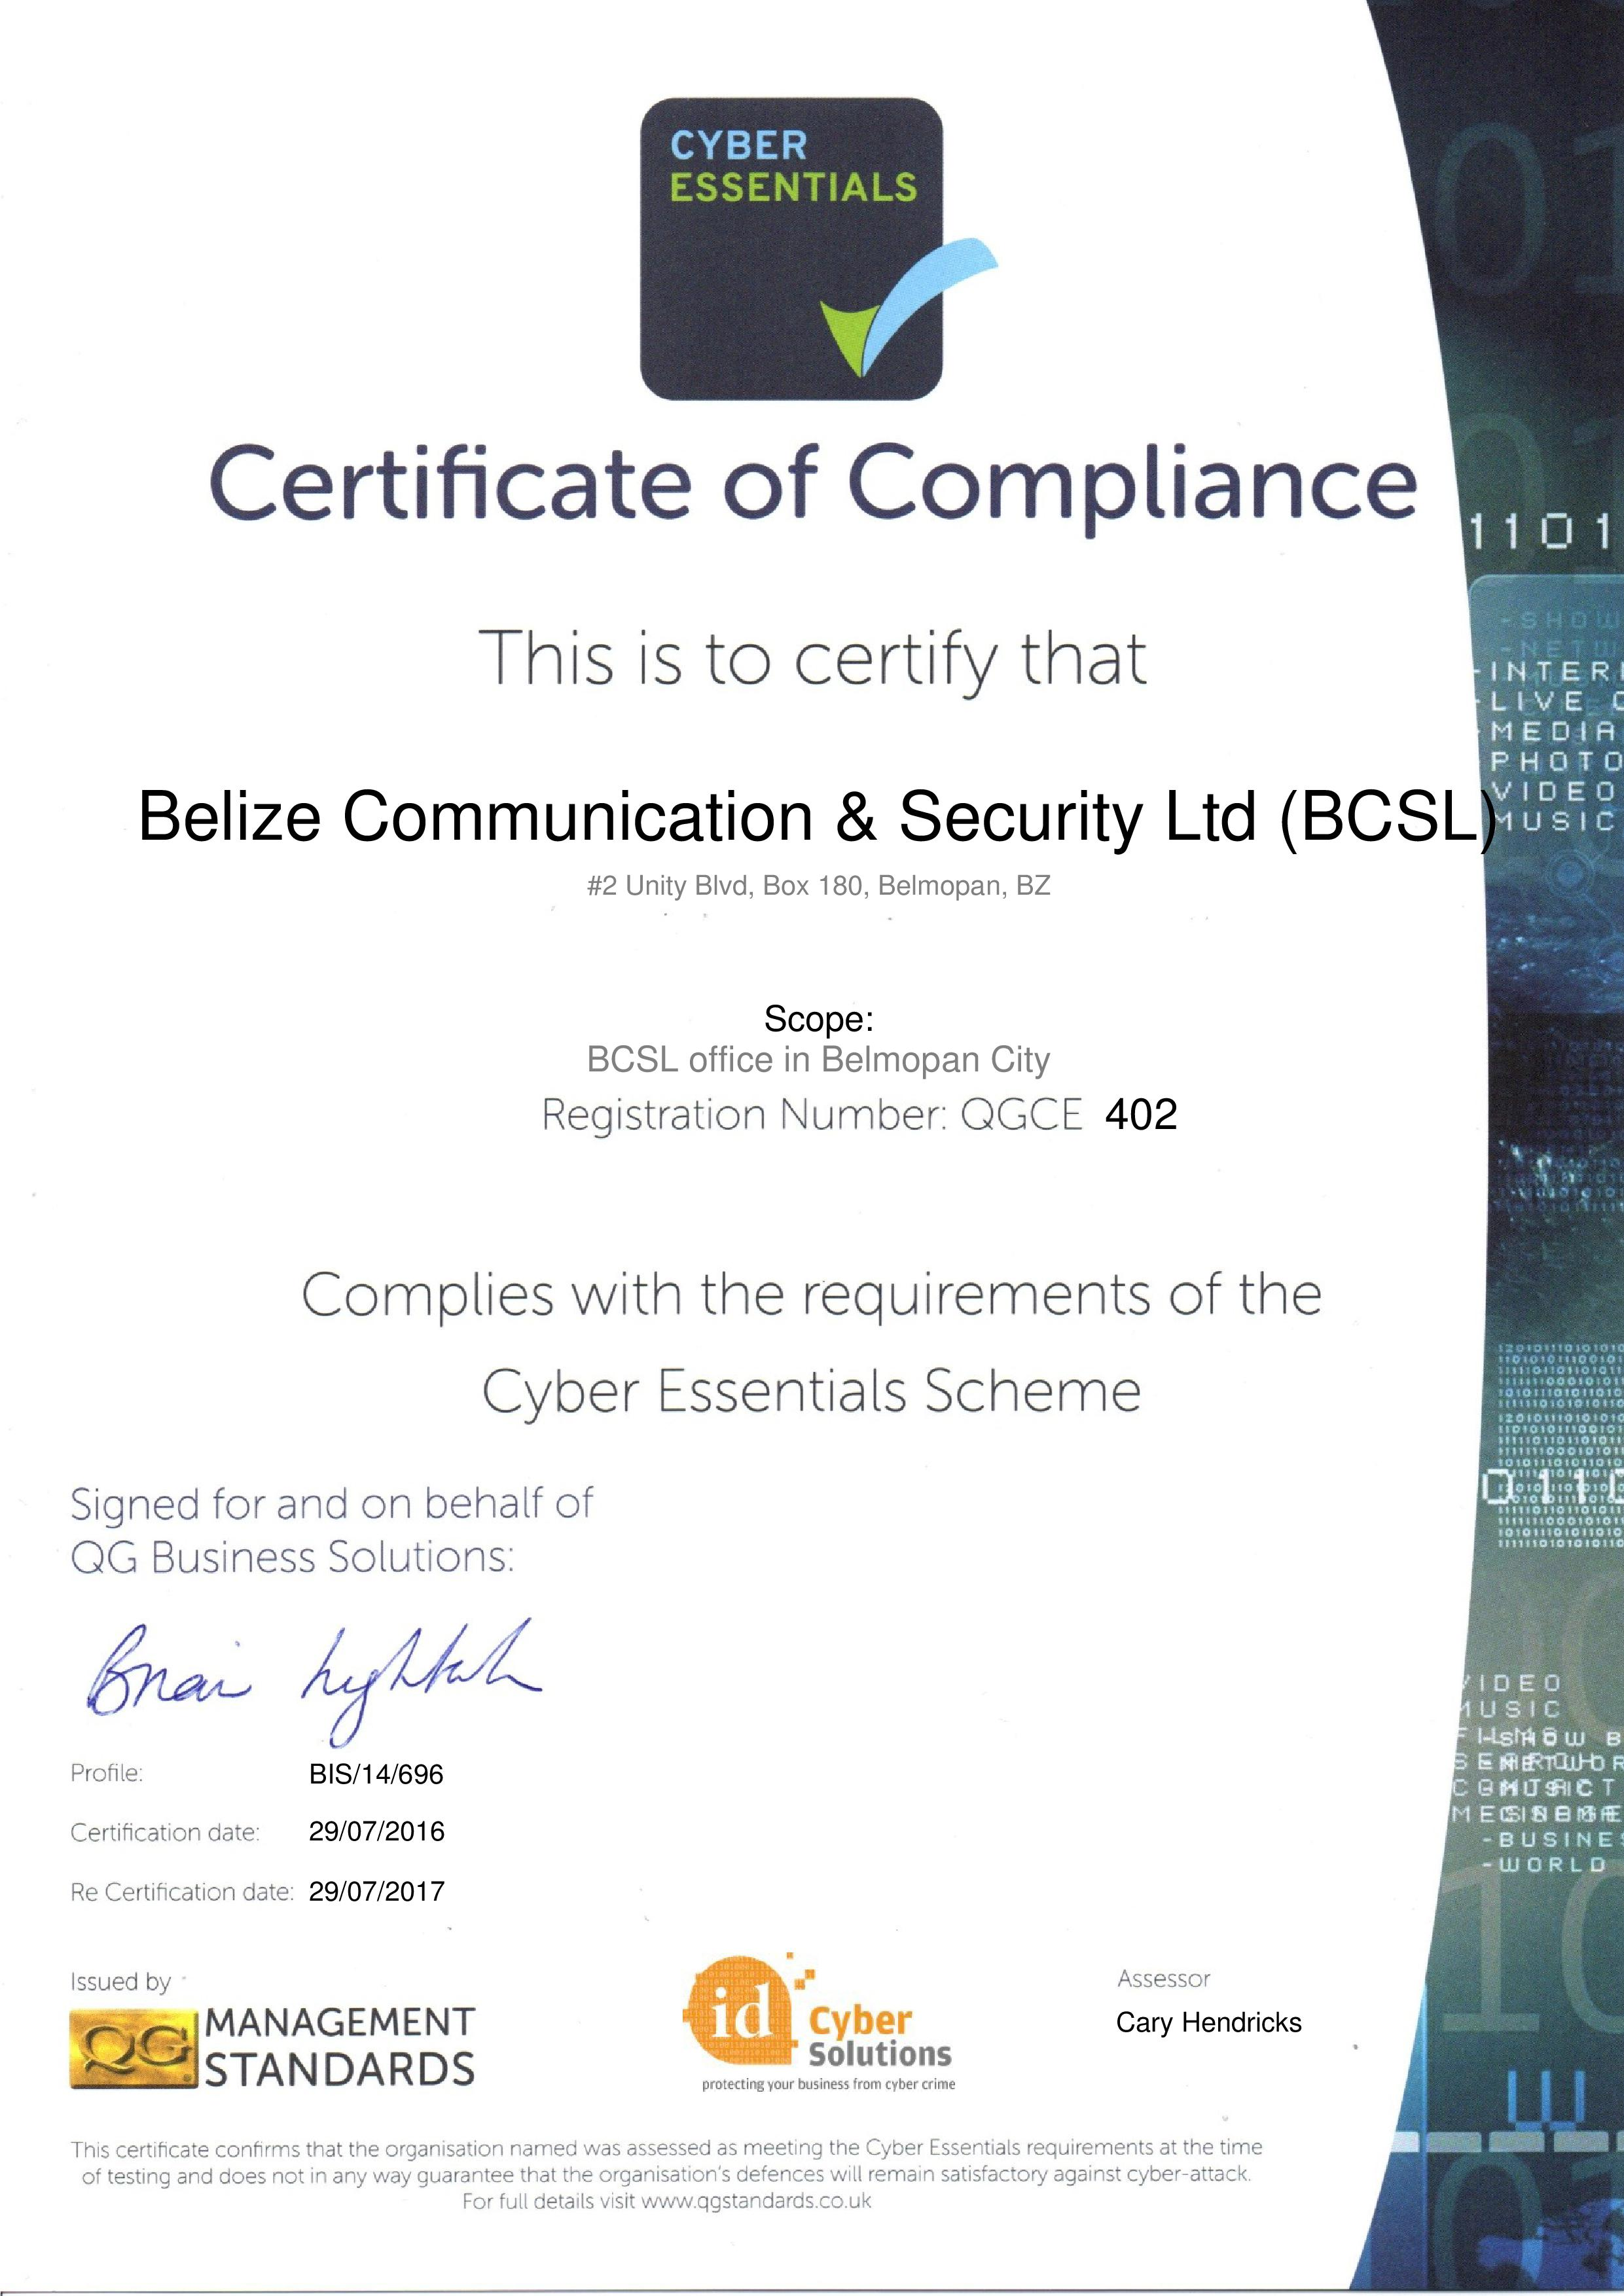 QGCE402 Belize Communication & Security Ltd (BCSL)